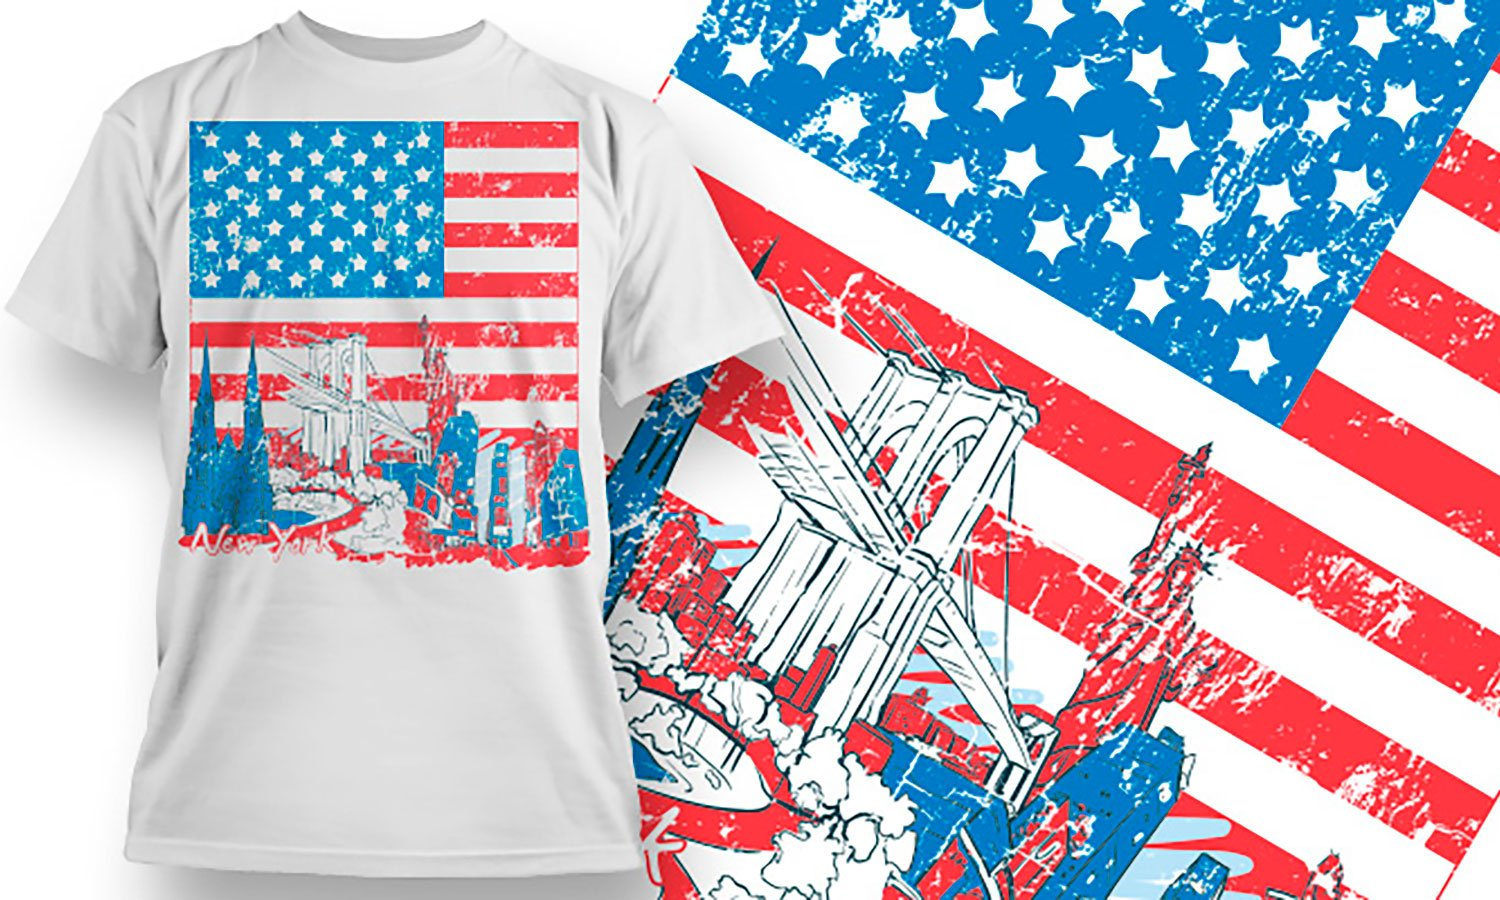 The America - Printed T-Shirt for Men, Women and Kids - TS115